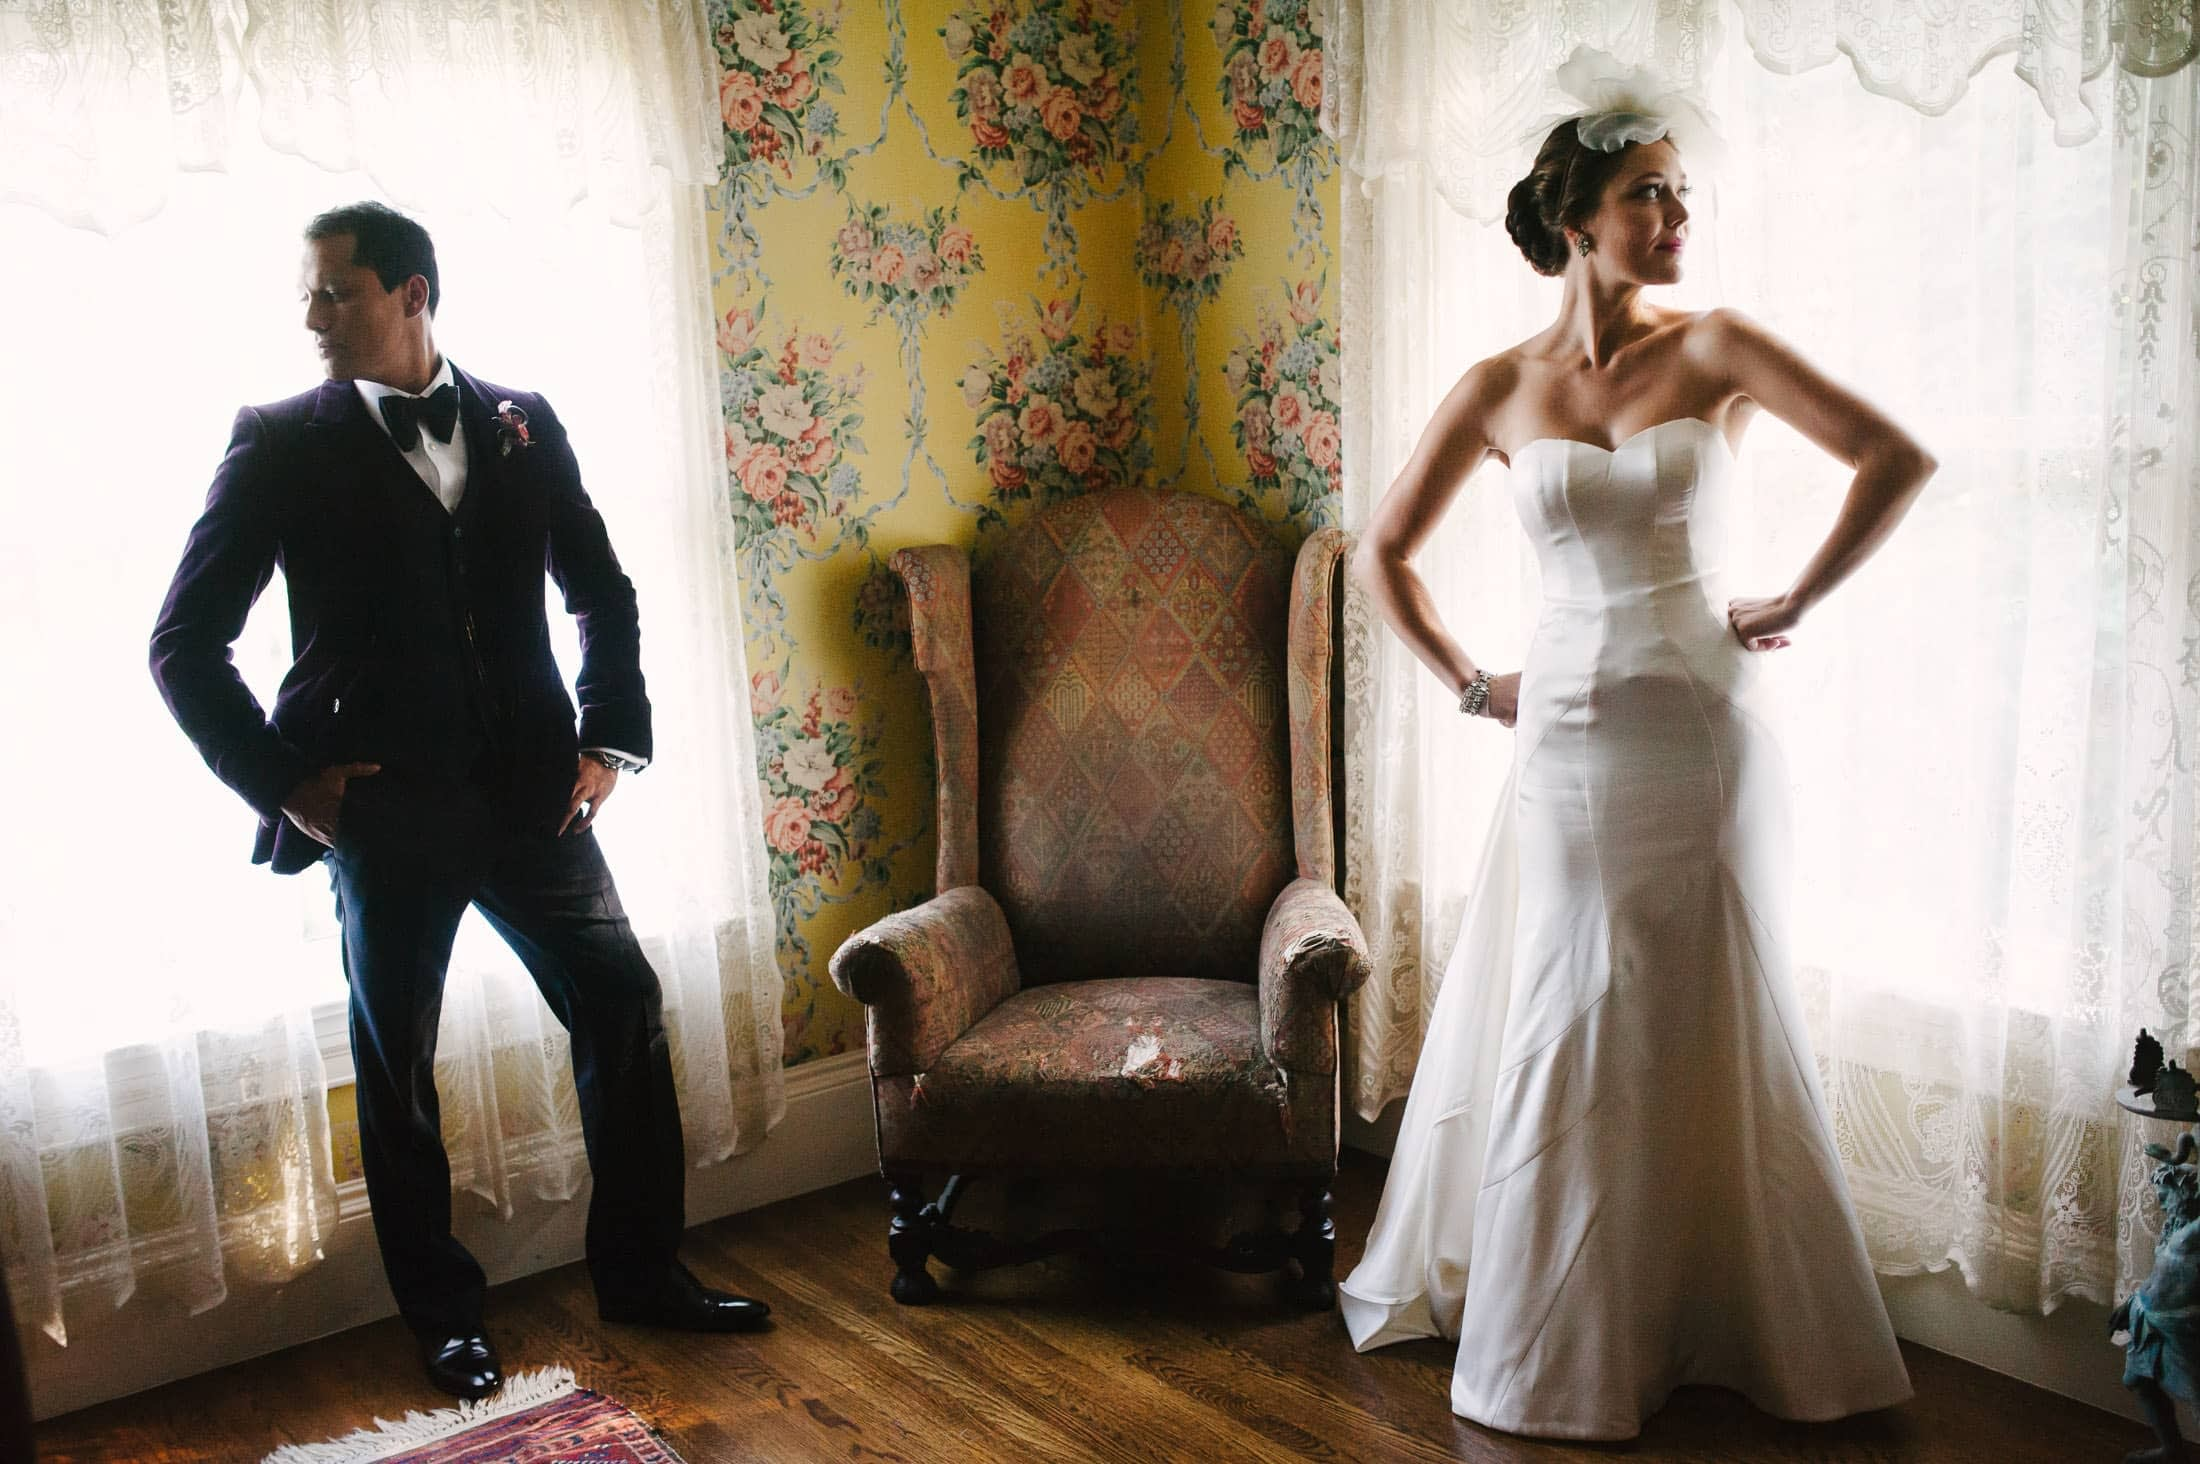 fun artistic shot of bride and groom against floral wall paper at Atherton Wedding